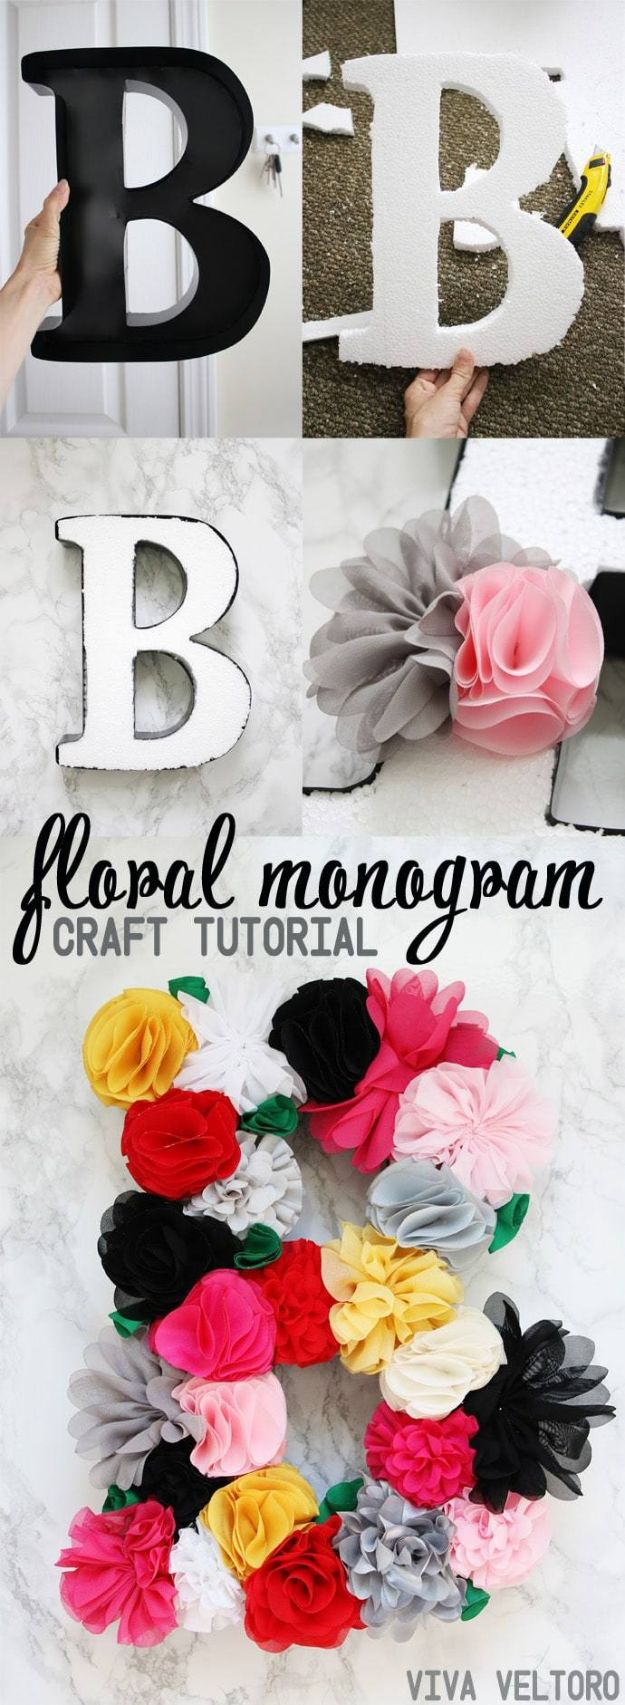 Crafts To Make and Sell - Flower Letter Monogram - 75 MORE Easy DIY Ideas for Cheap Things To Sell on Etsy, Online and for Craft Fairs. Make Money with crafts to sell ideas #crafts